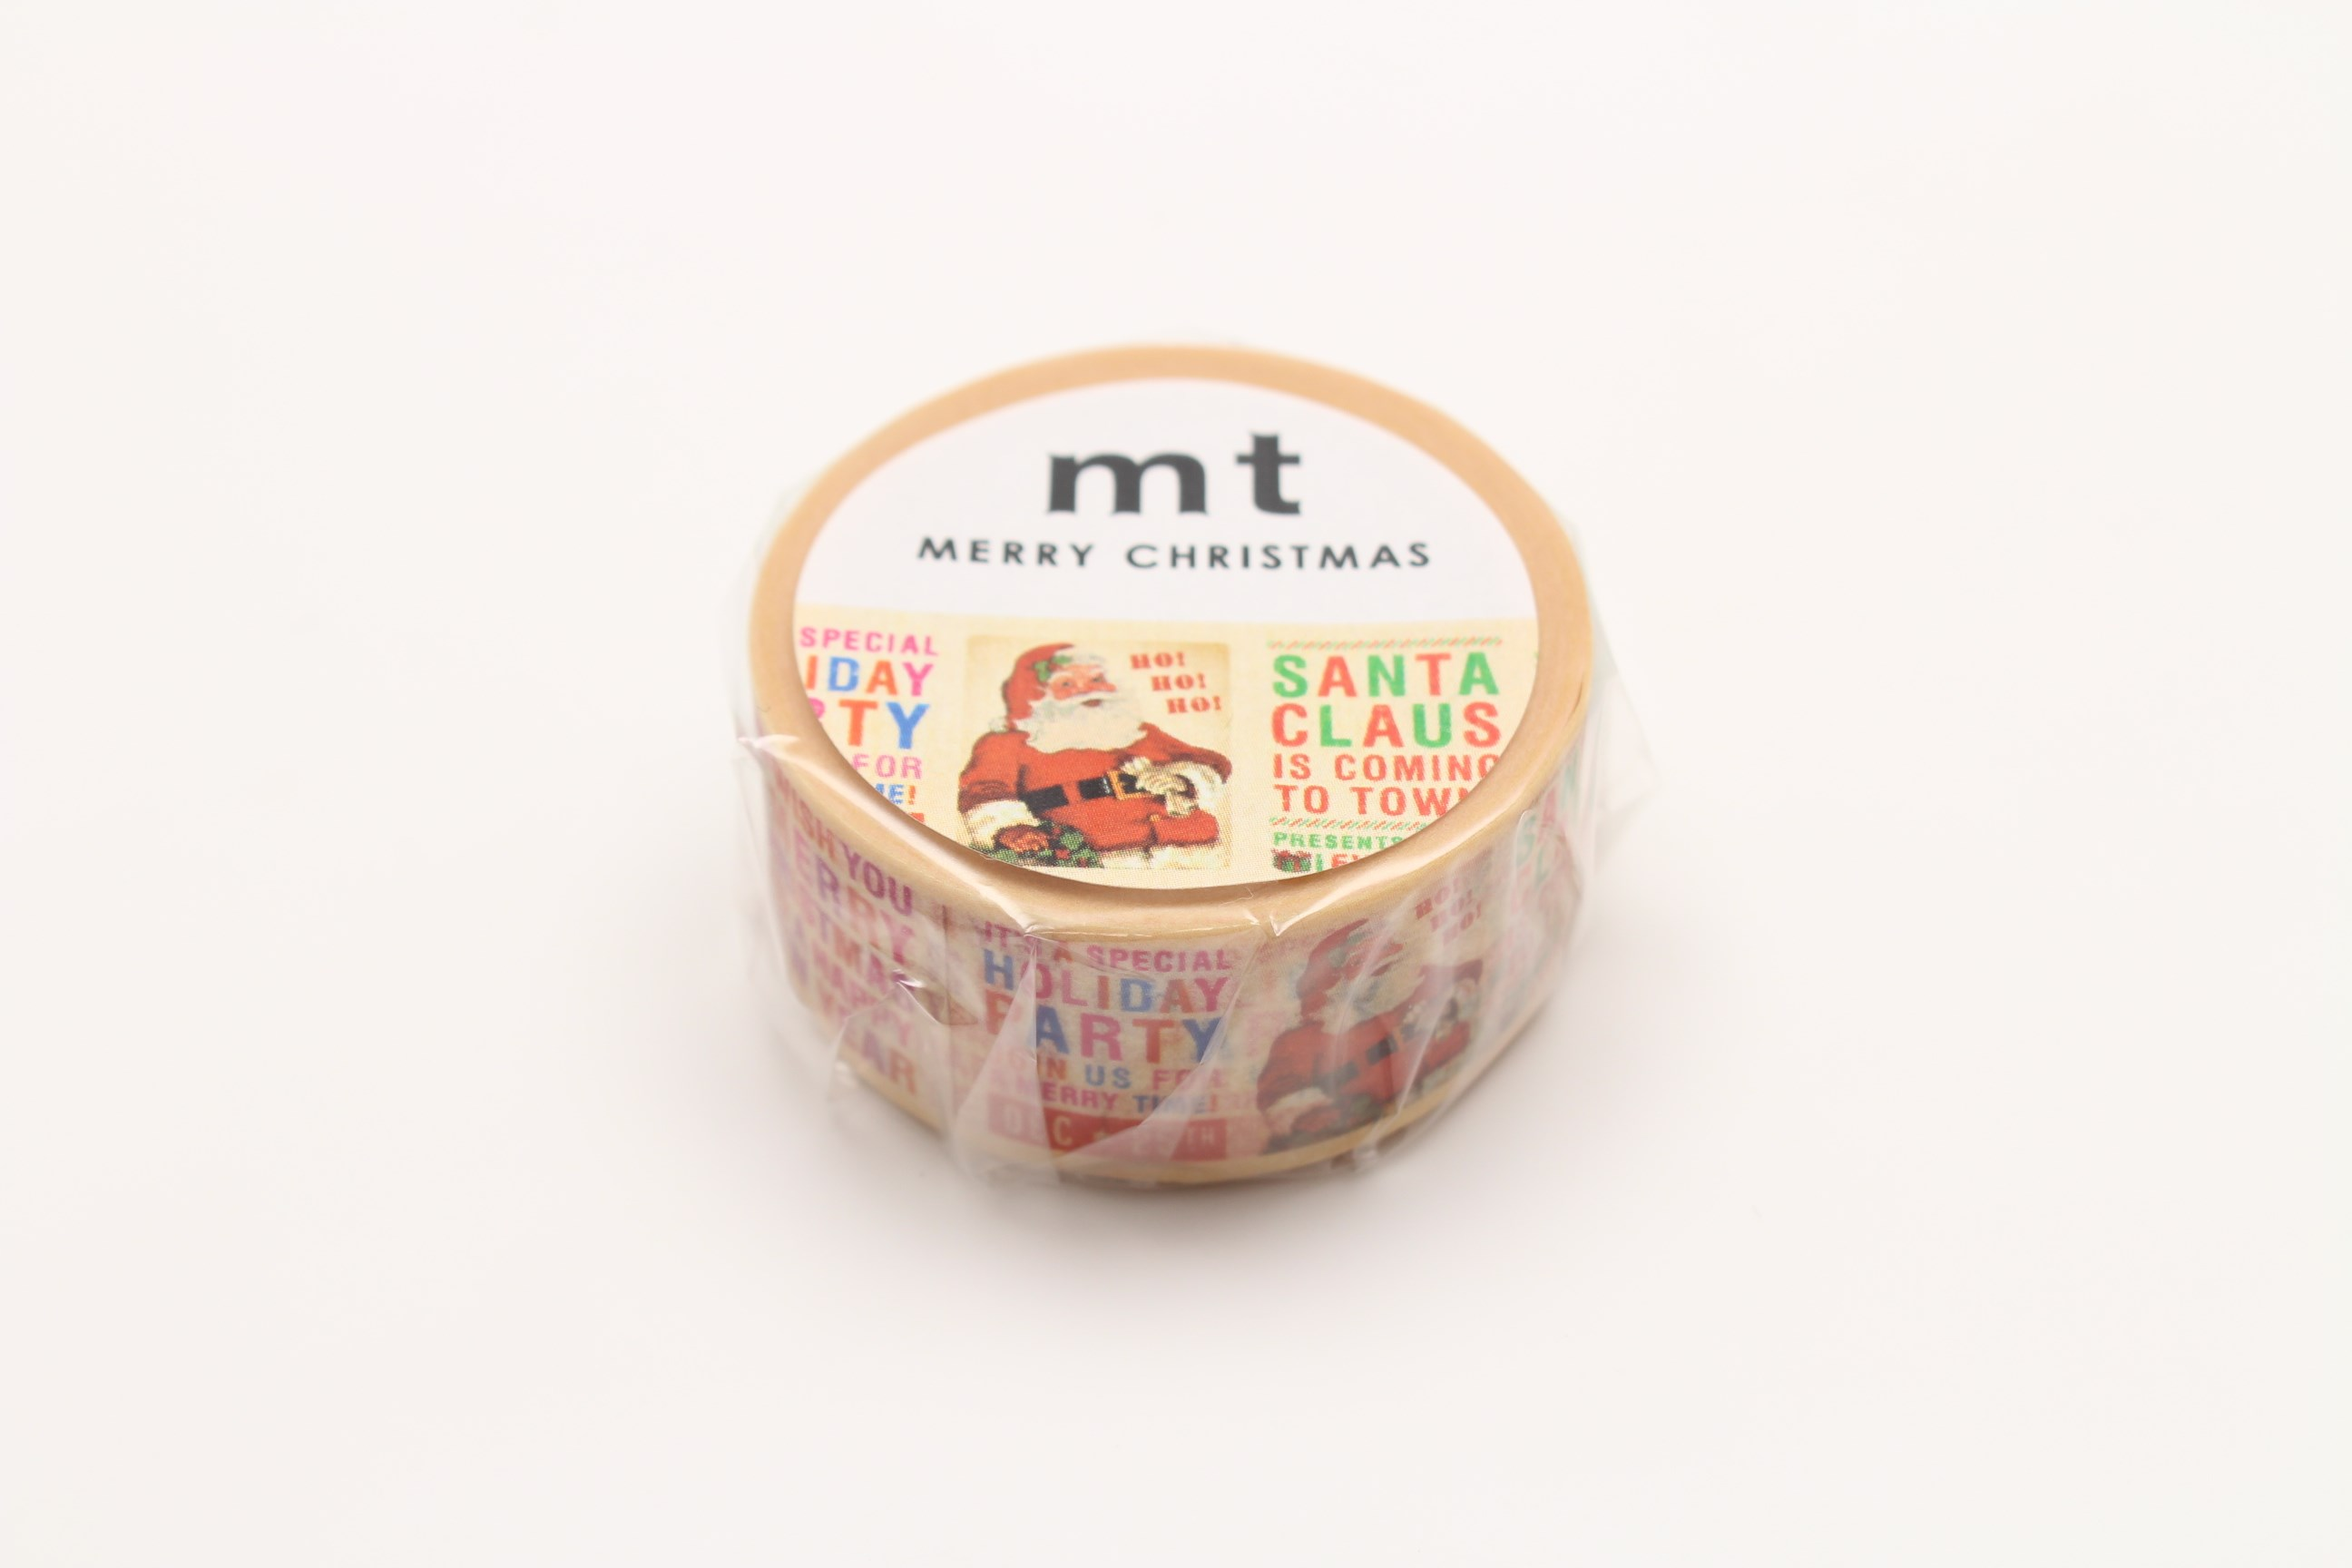 mt masking tape christmas news MTCMAS80Z 3.JPG